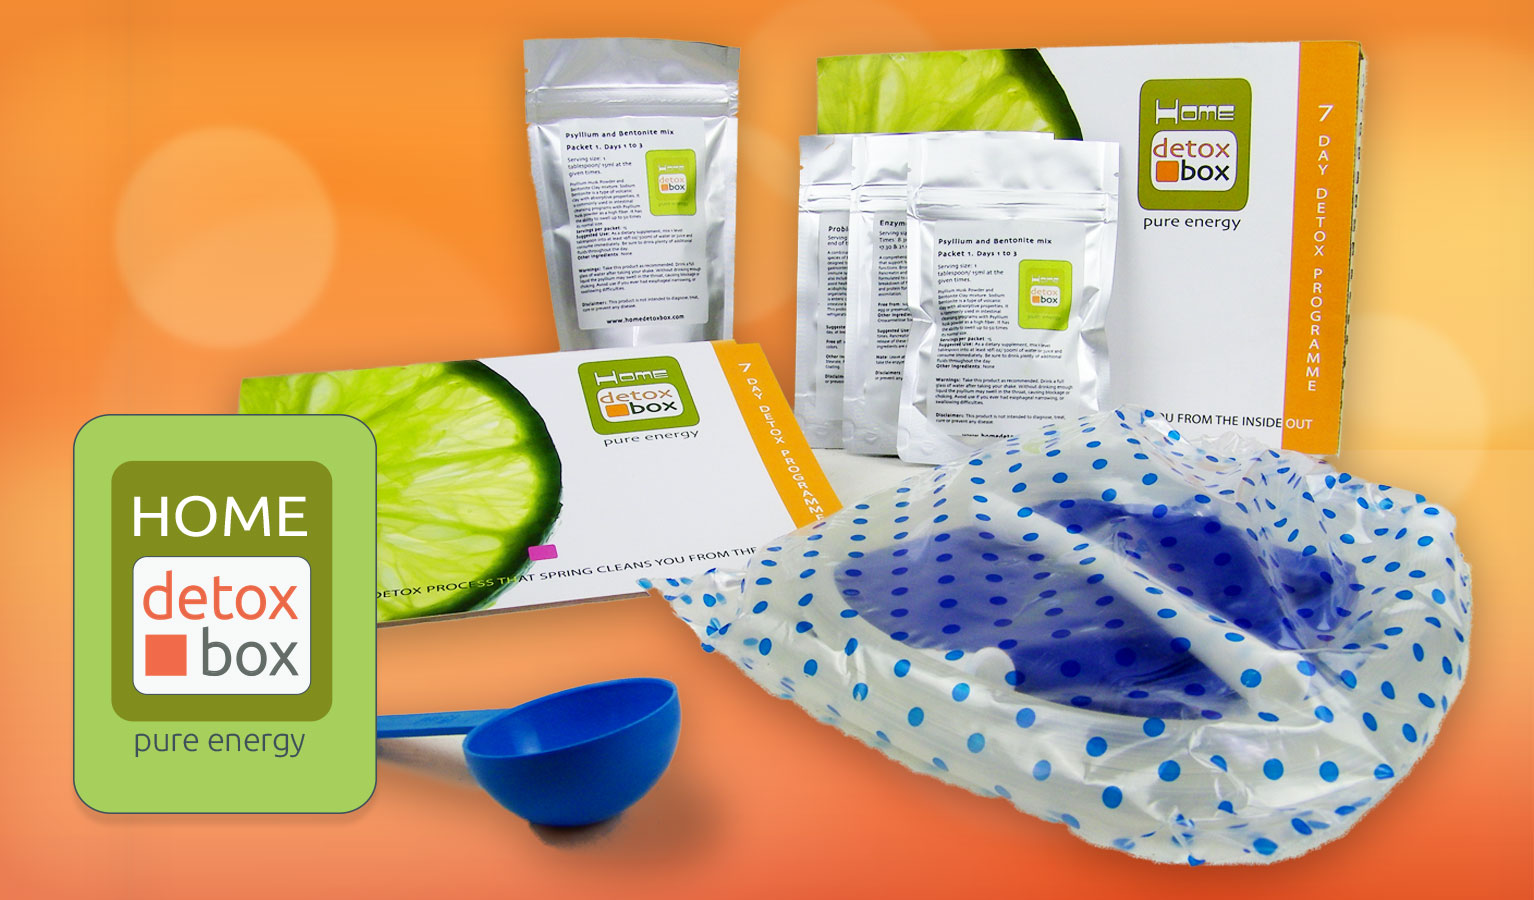 Home Detox Box Info included items